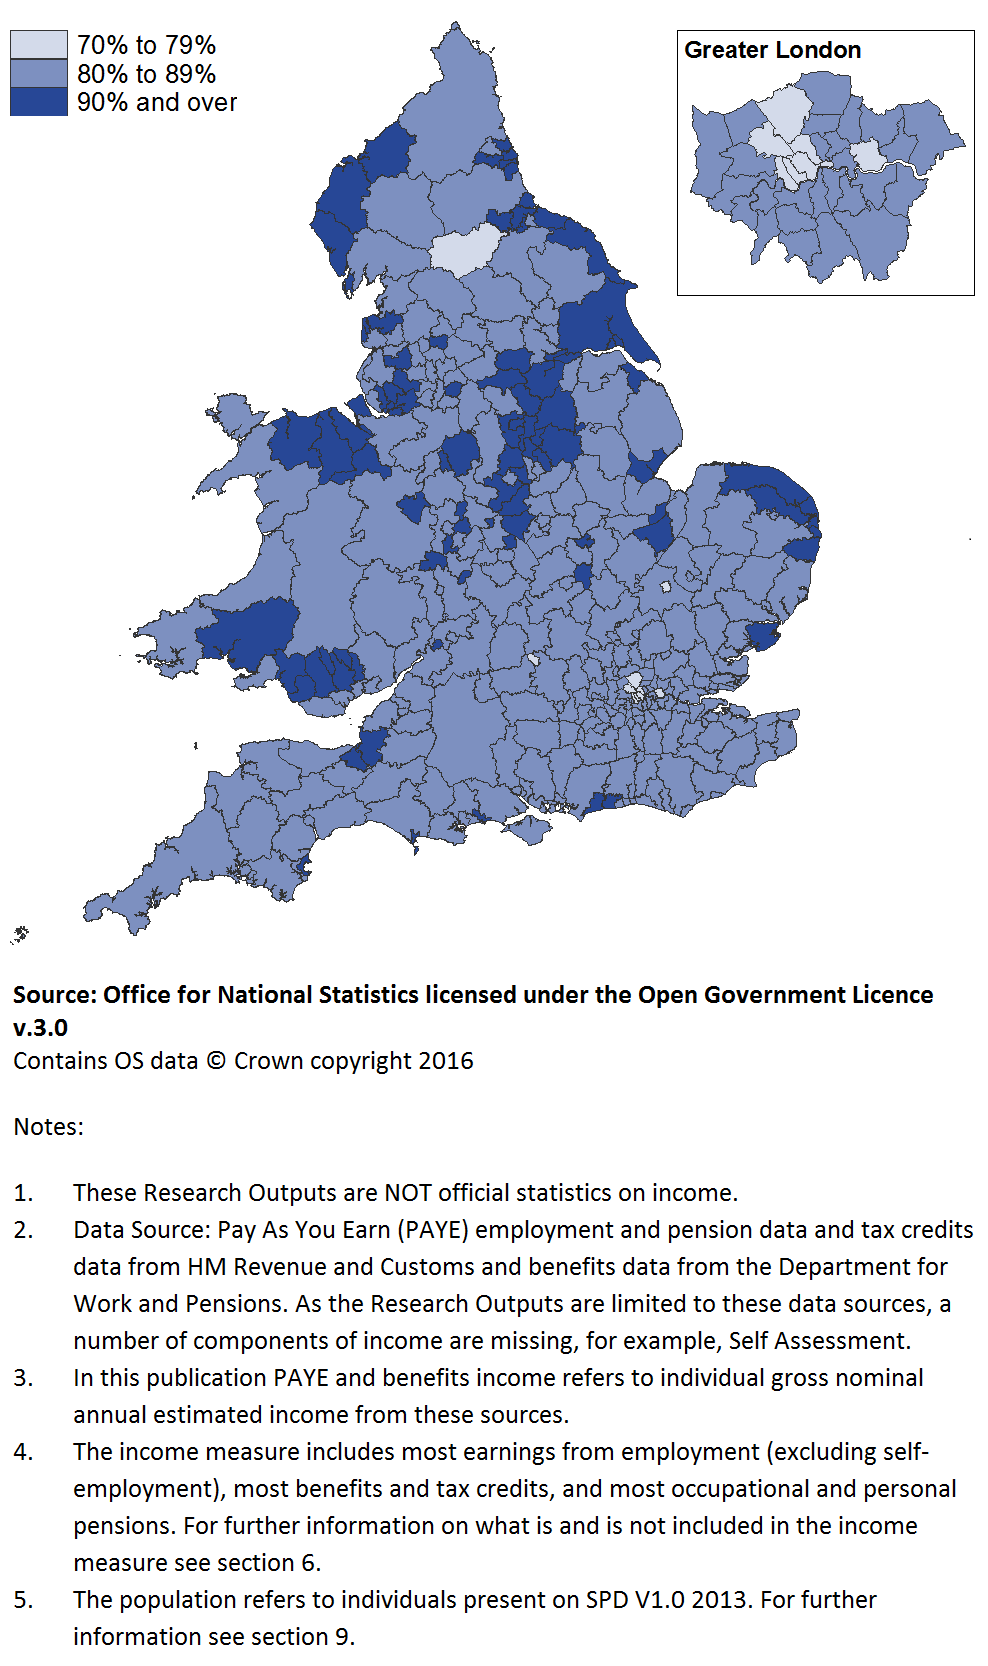 All local authorities had some income information available for at least 70% of their population.